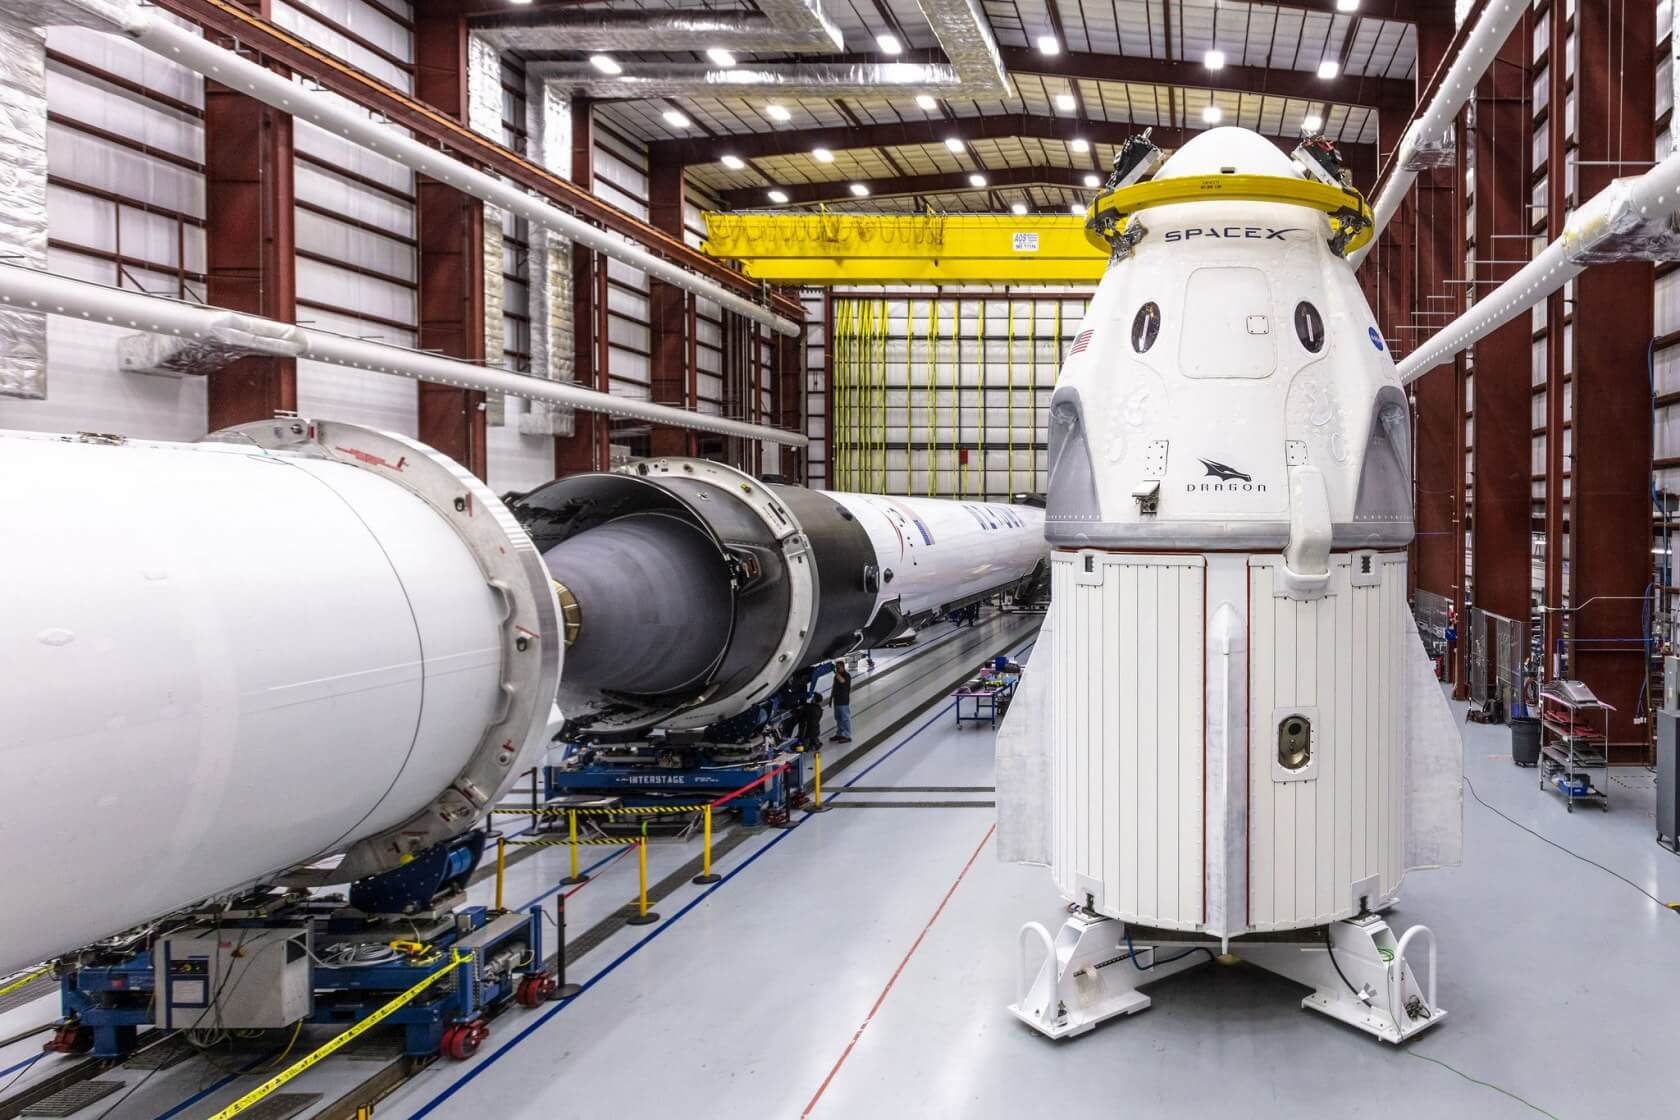 Watch the Next SpaceX Falcon 9 Launch the CRS-17 Mission